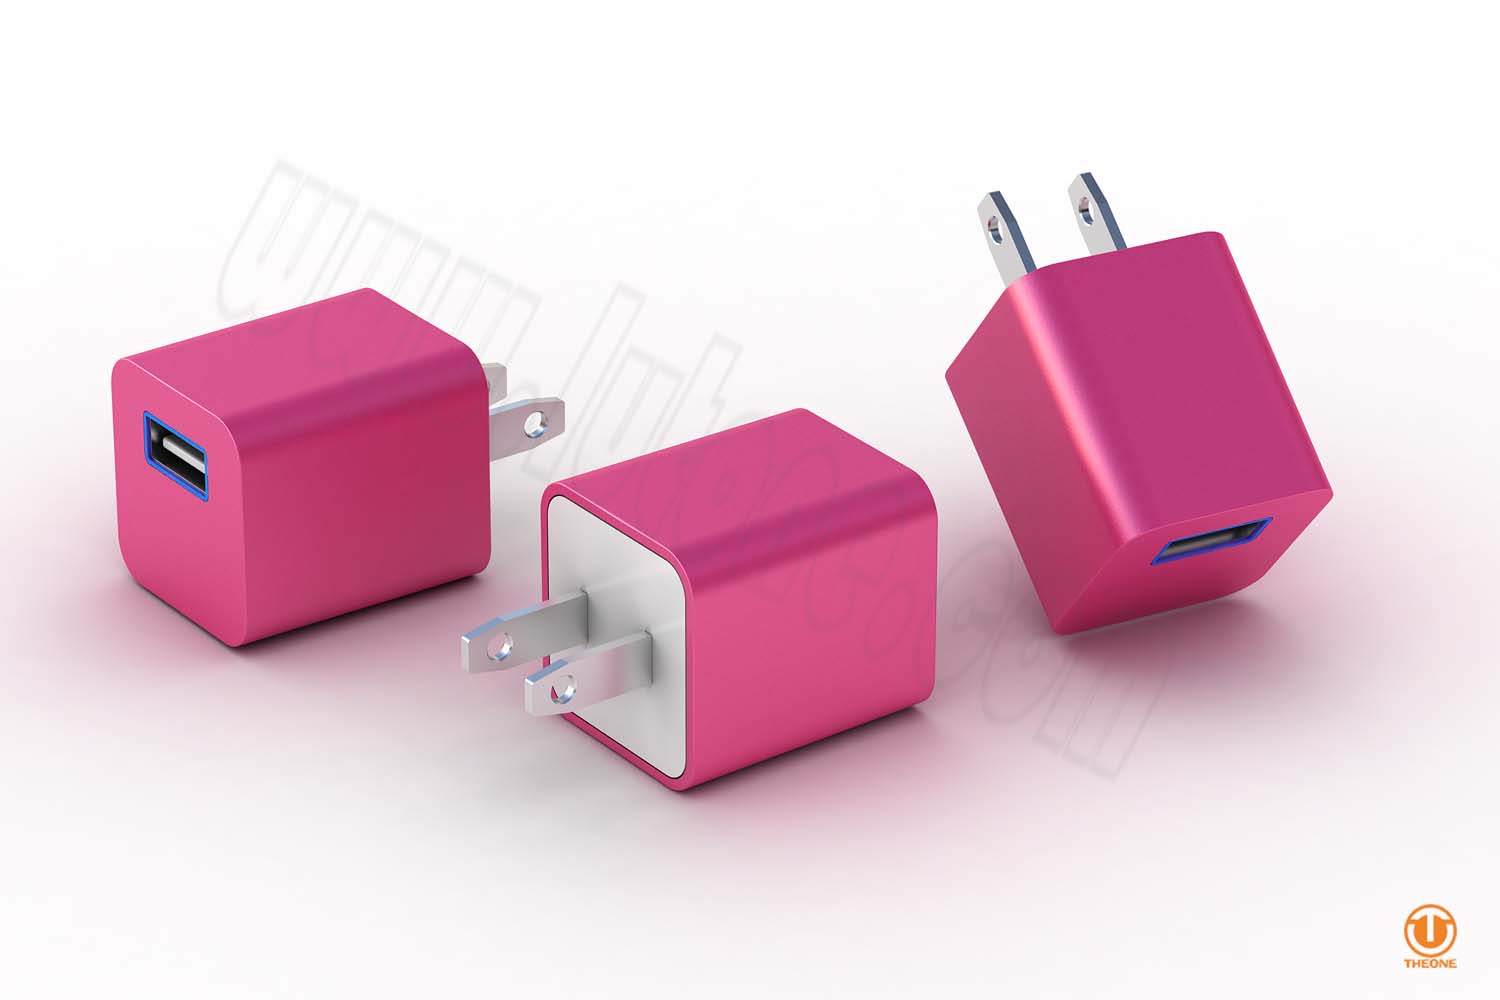 tc01a9-1 usb wall charger